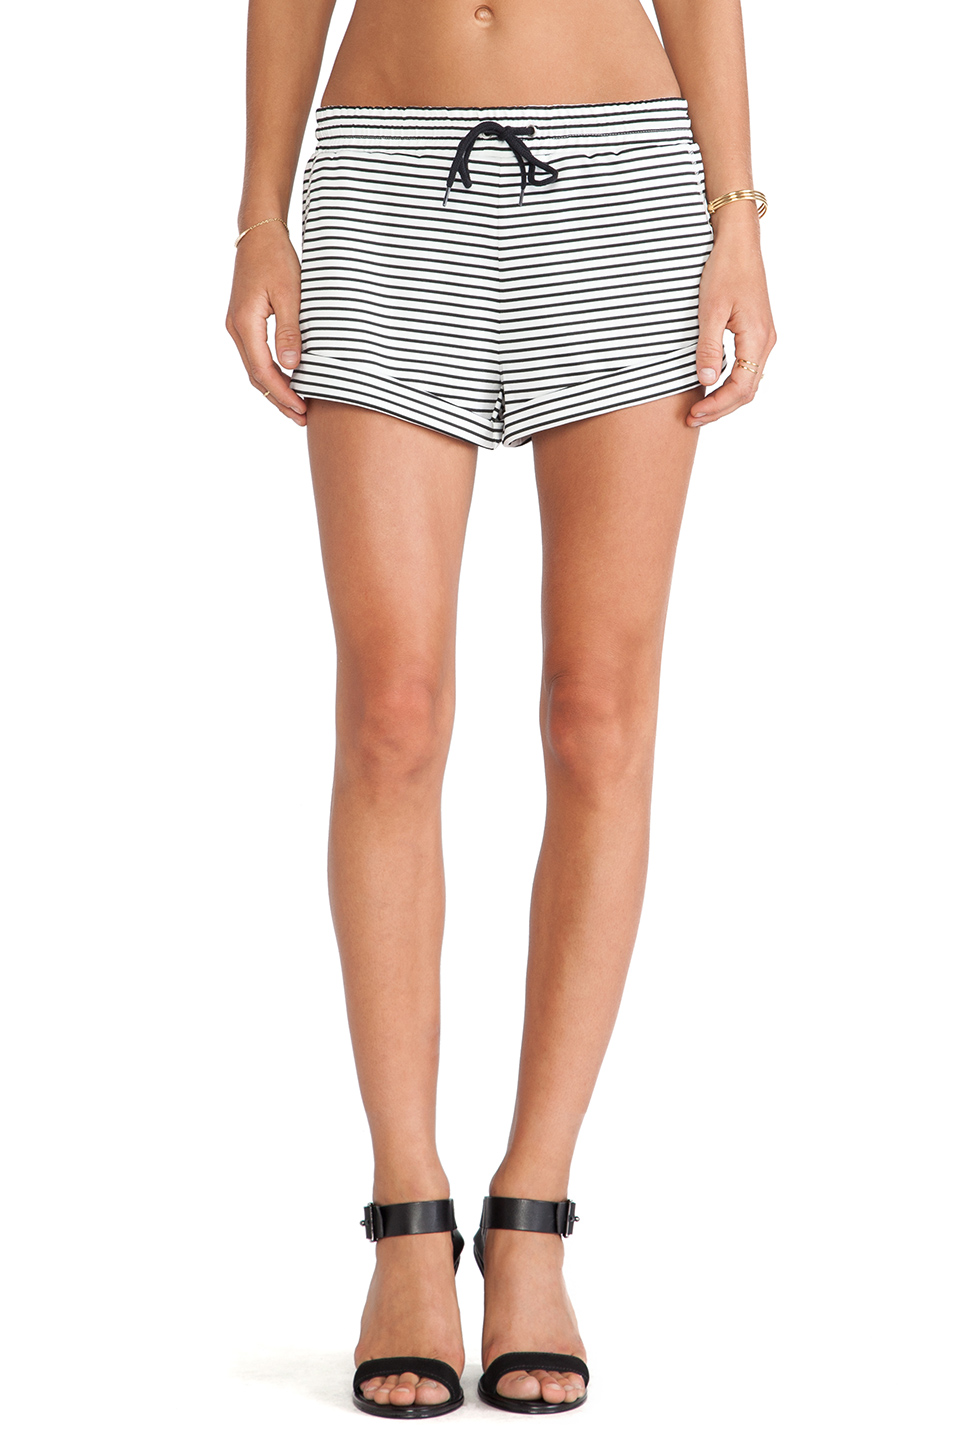 The fifth label breeze block shorts in white & black stripe from revolveclothing.com